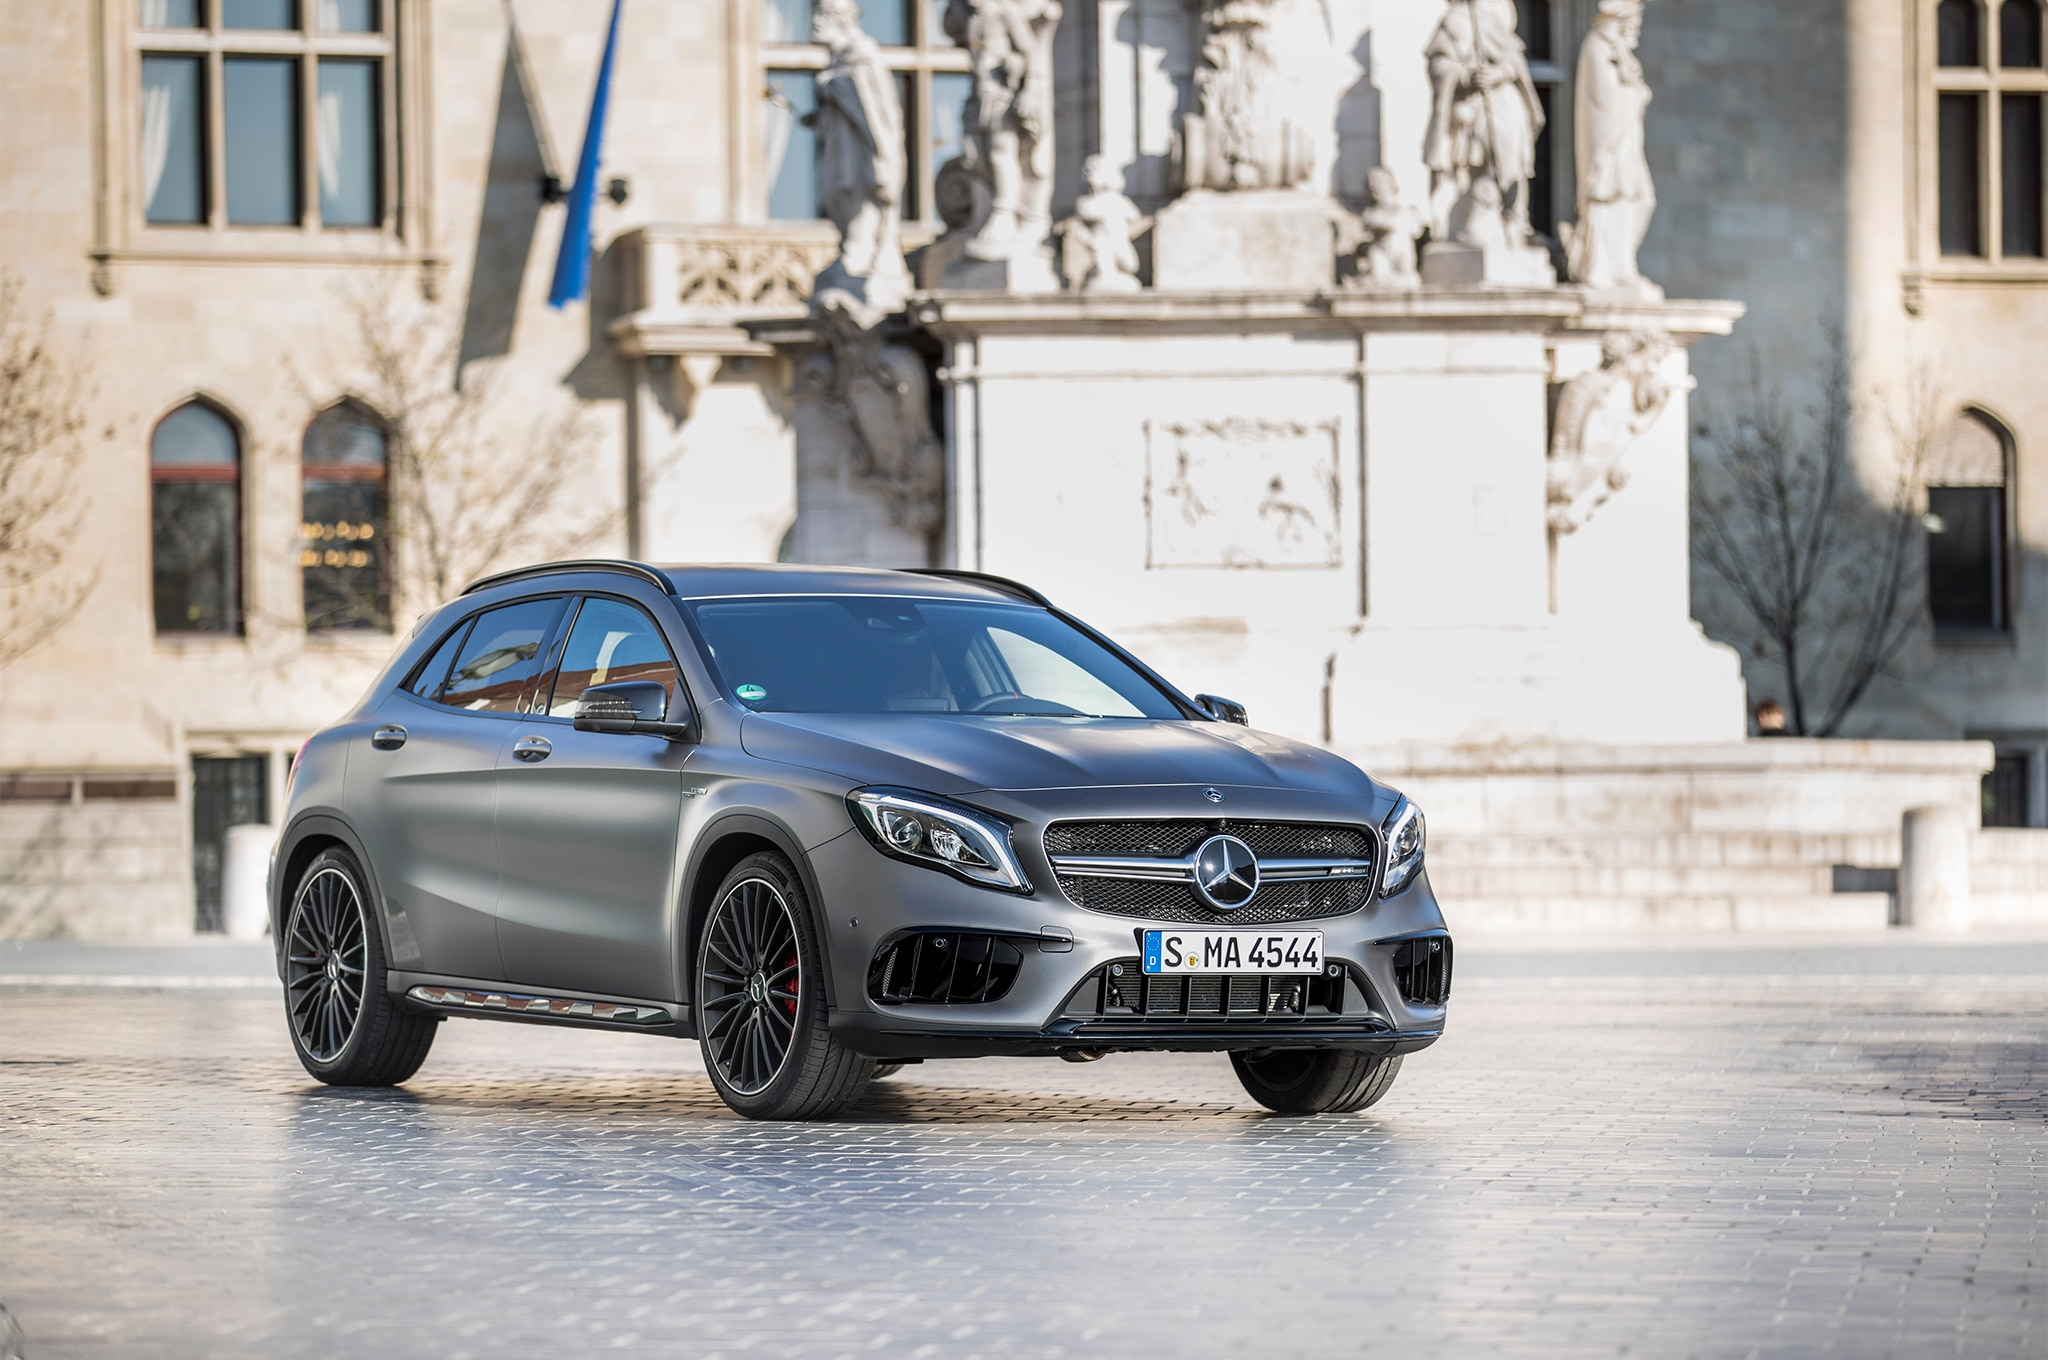 2018 mercedes benz gla class first drive review automobile magazine. Black Bedroom Furniture Sets. Home Design Ideas